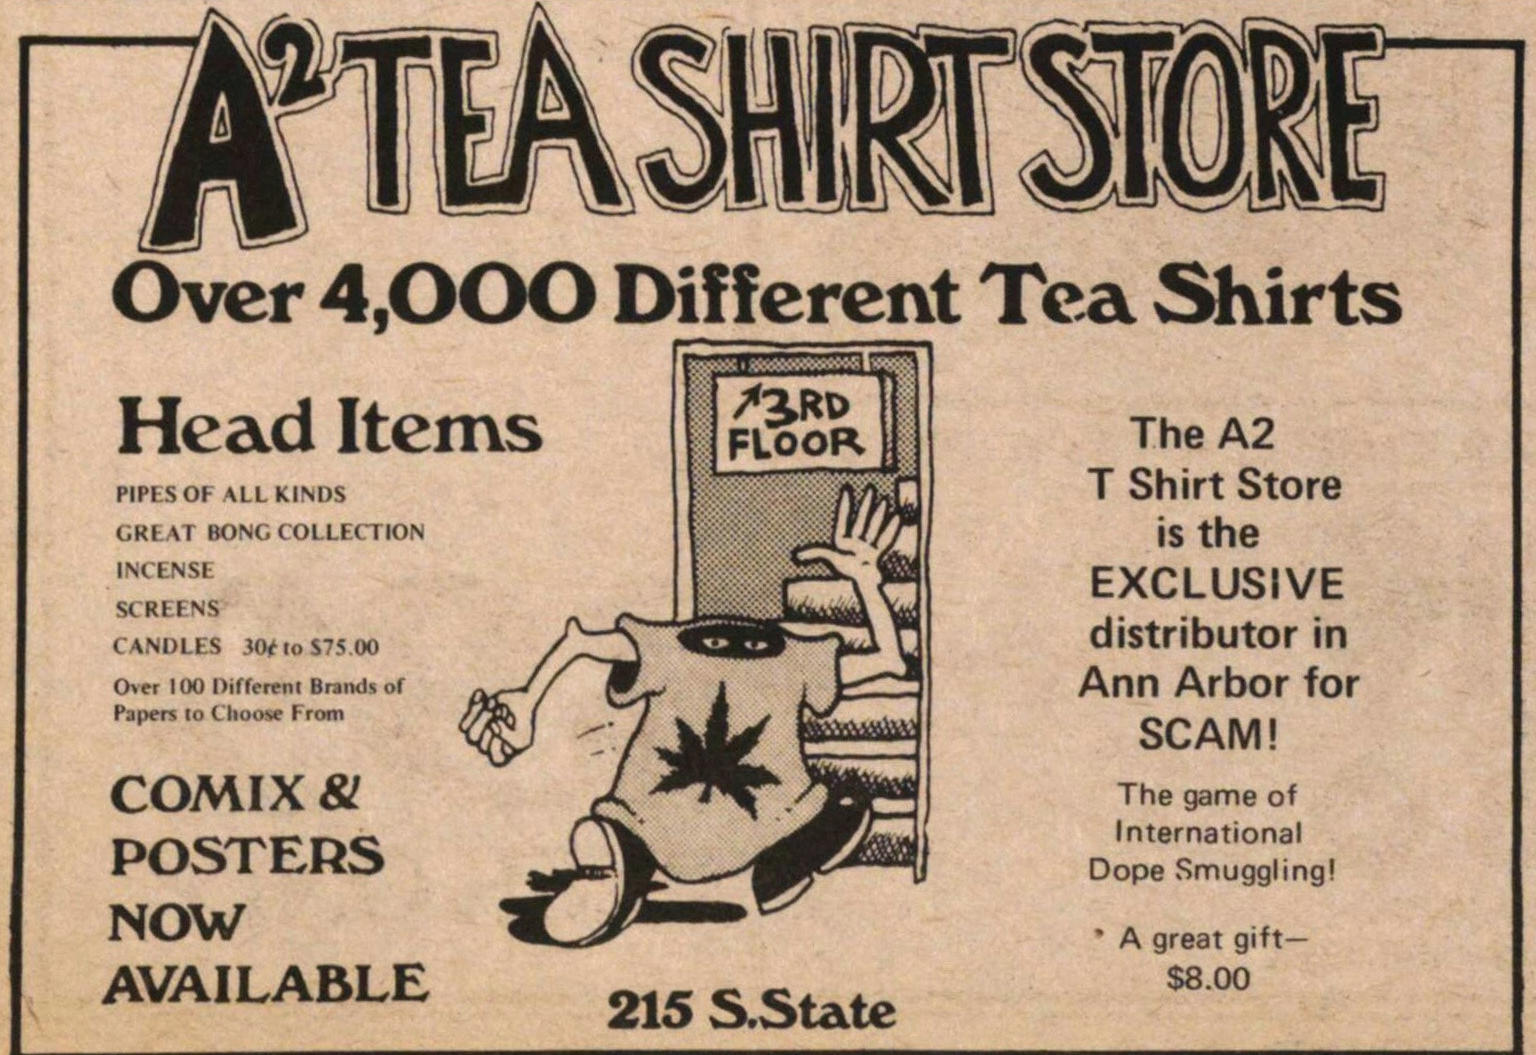 A2 Tea Shirt Store image